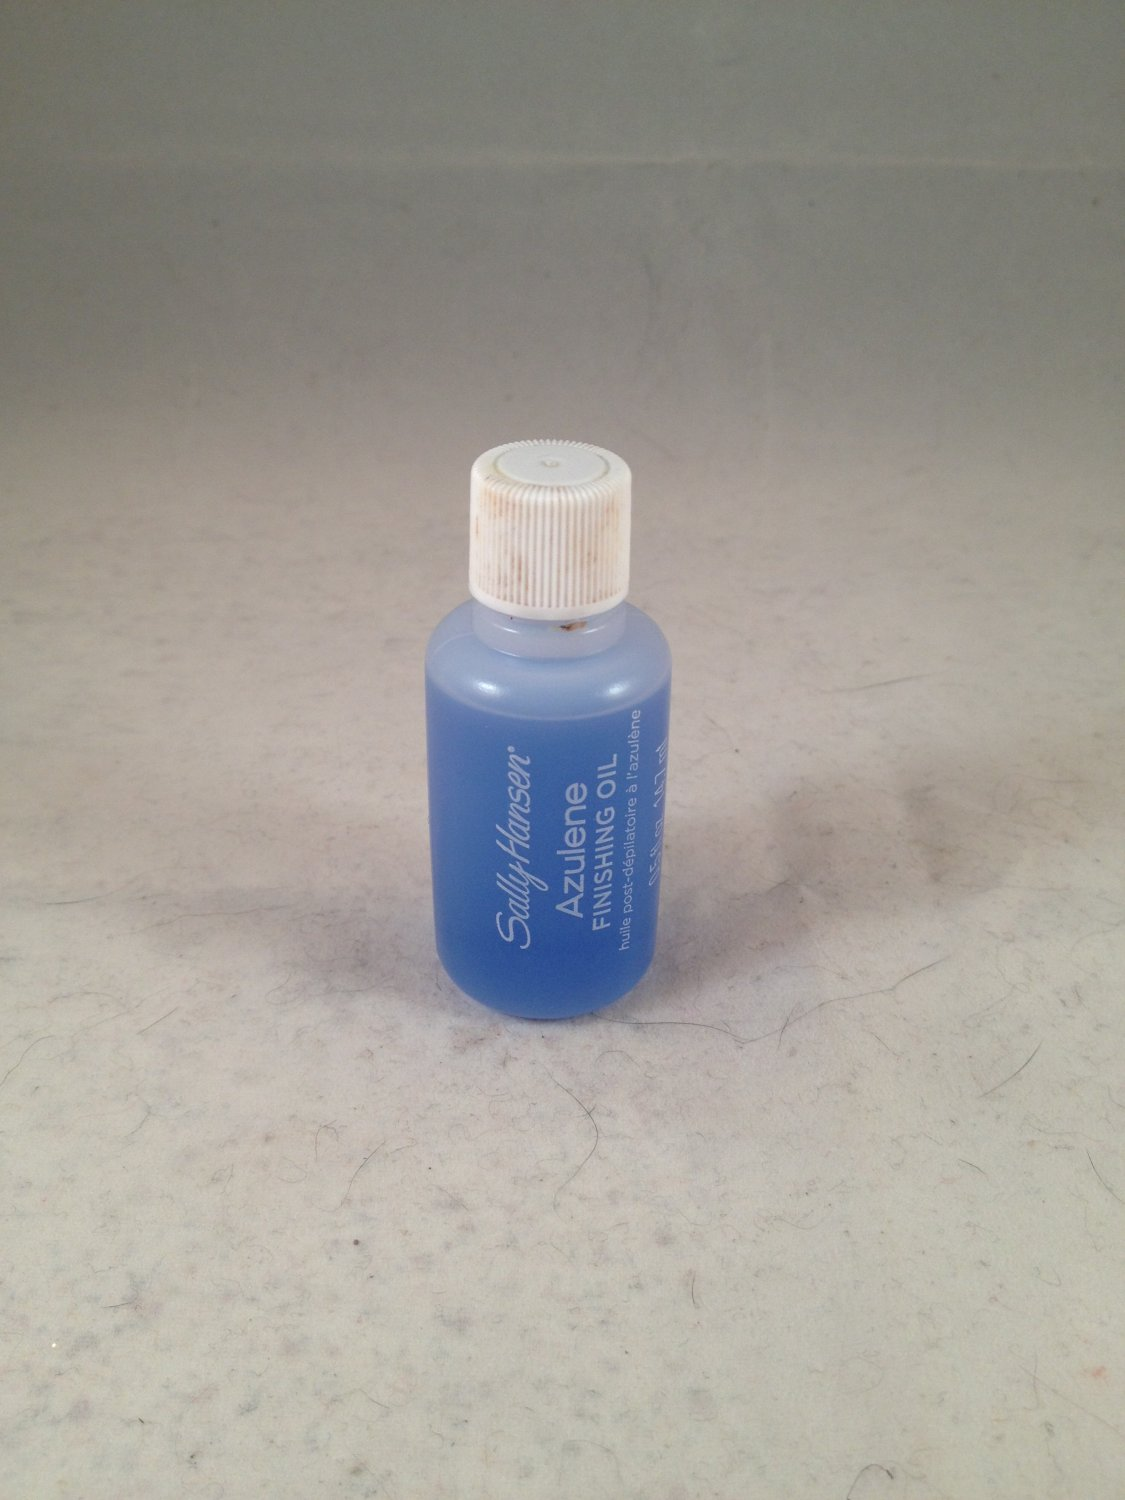 Sally Hansen Azulene Finishing Oil skin conditioner for after waxing hair removal